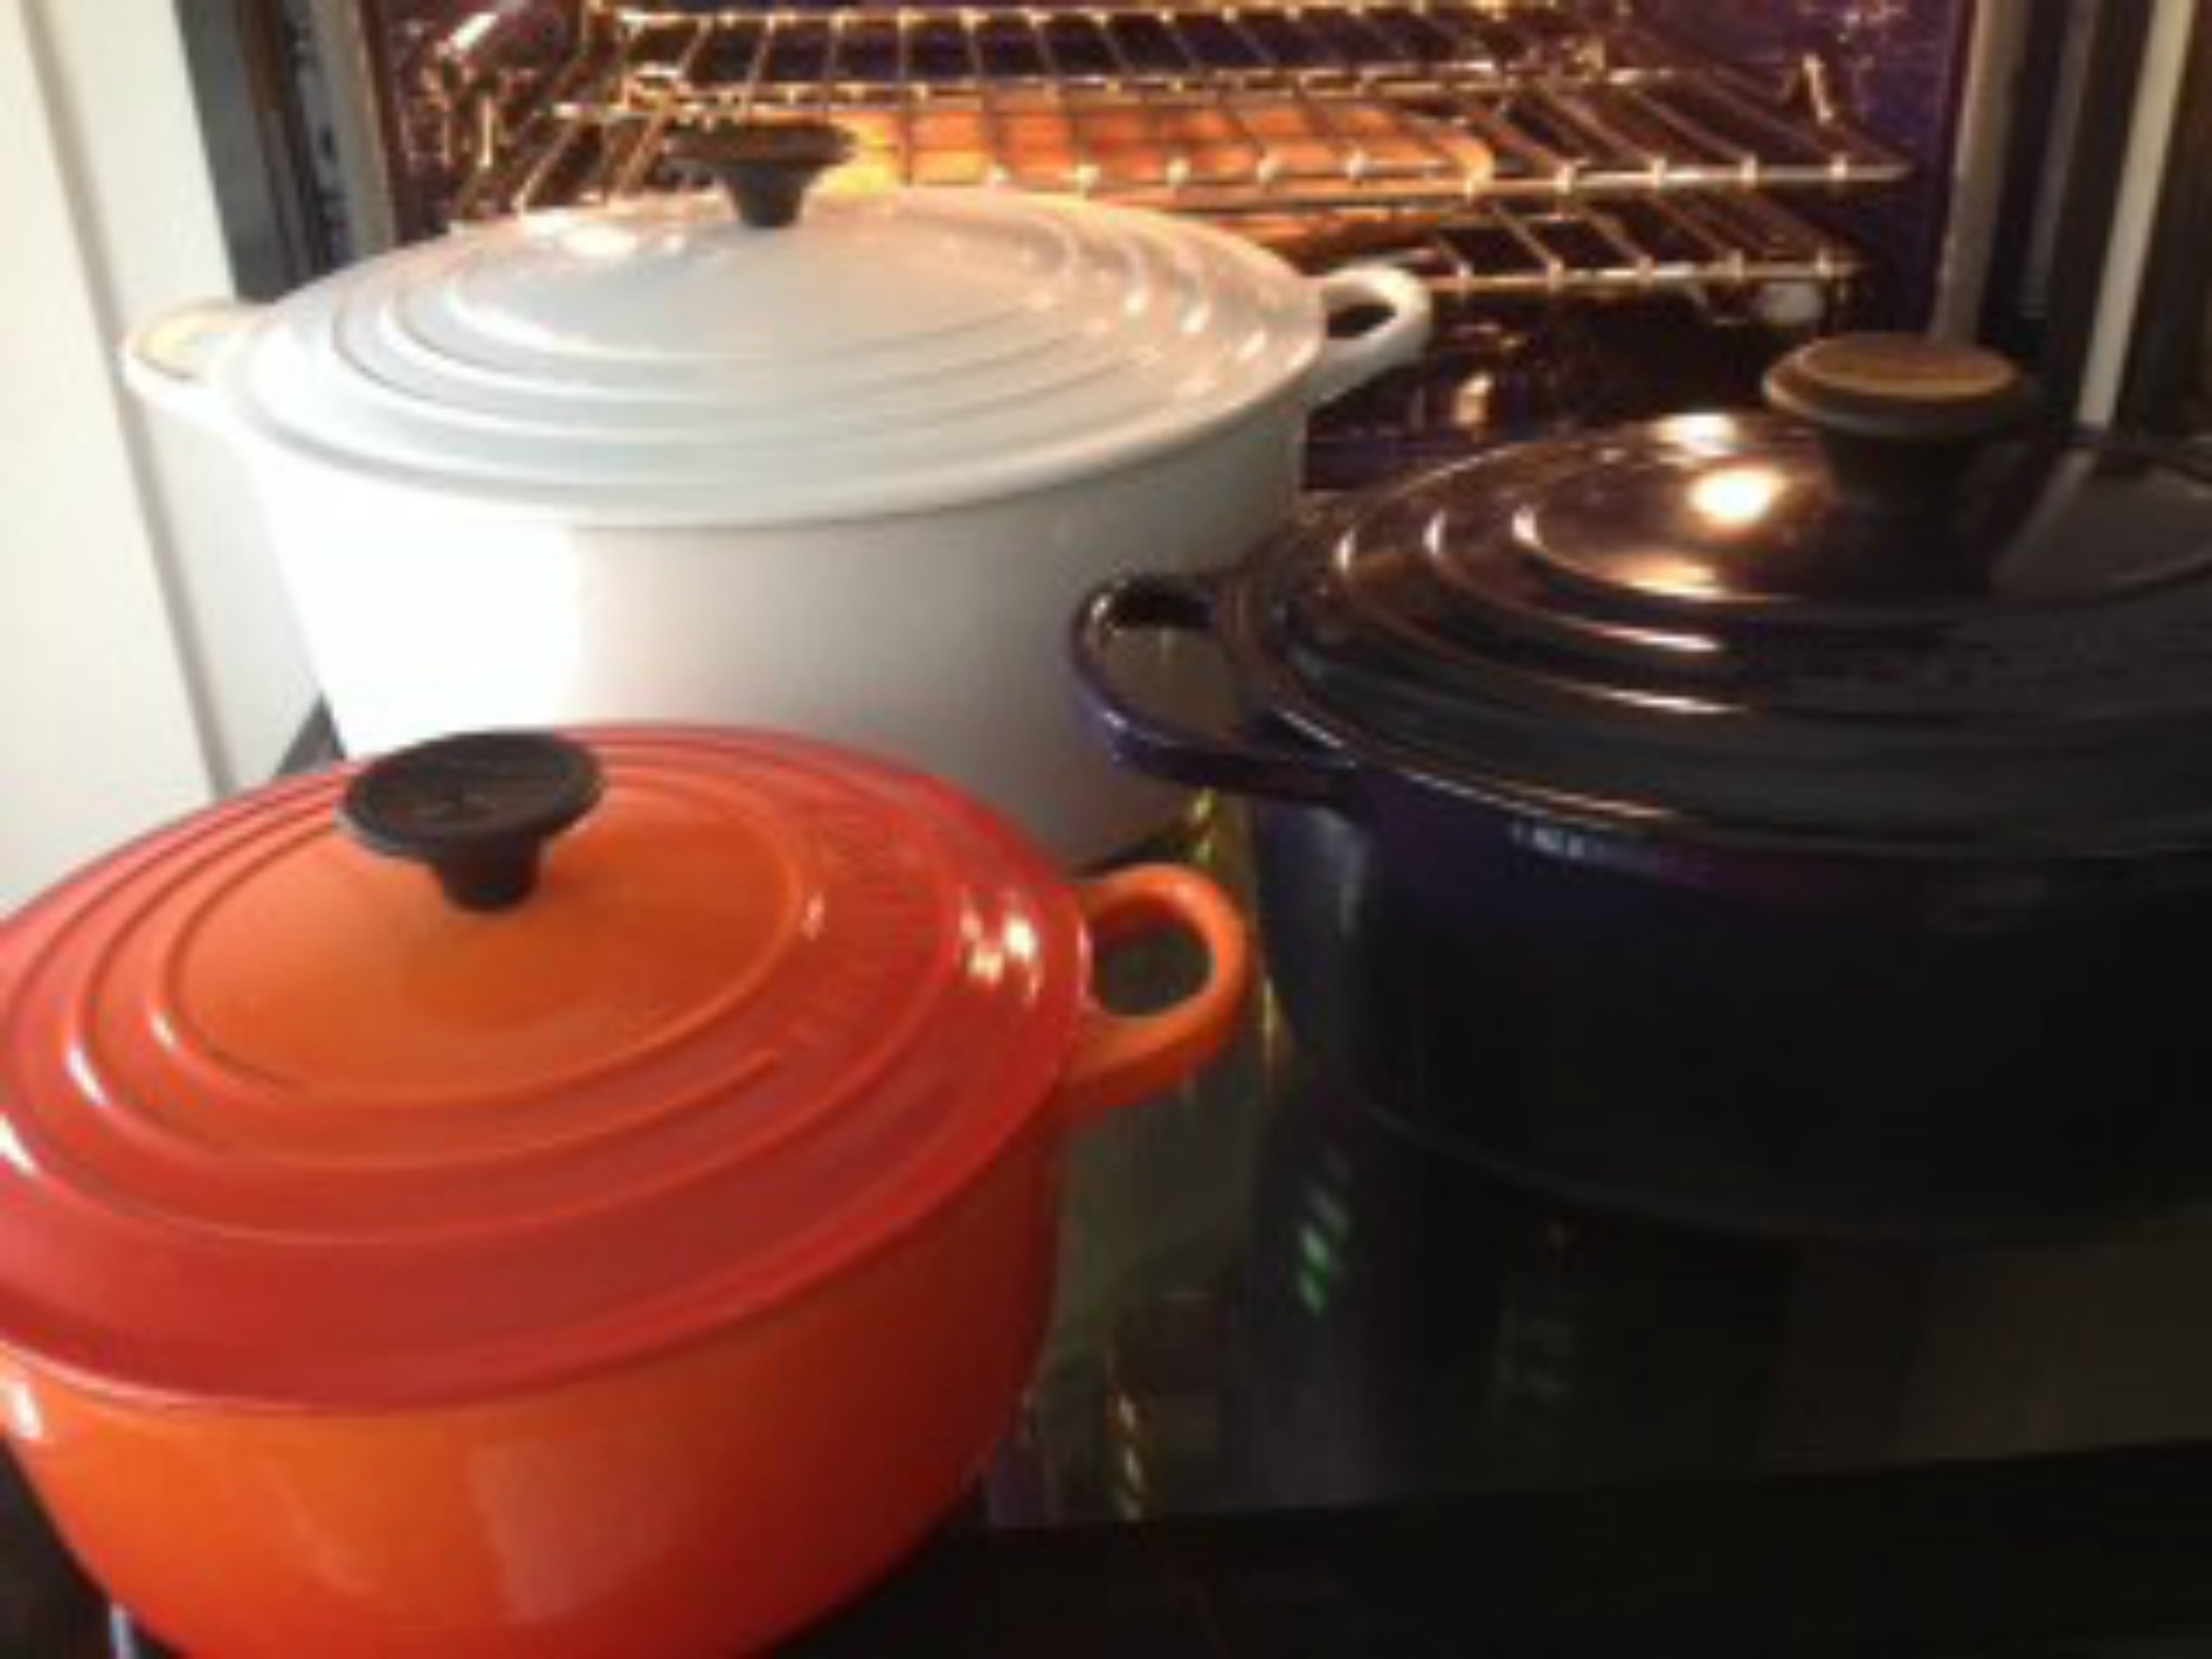 Inspiring Kitchen Le Creuset bread dutch oven